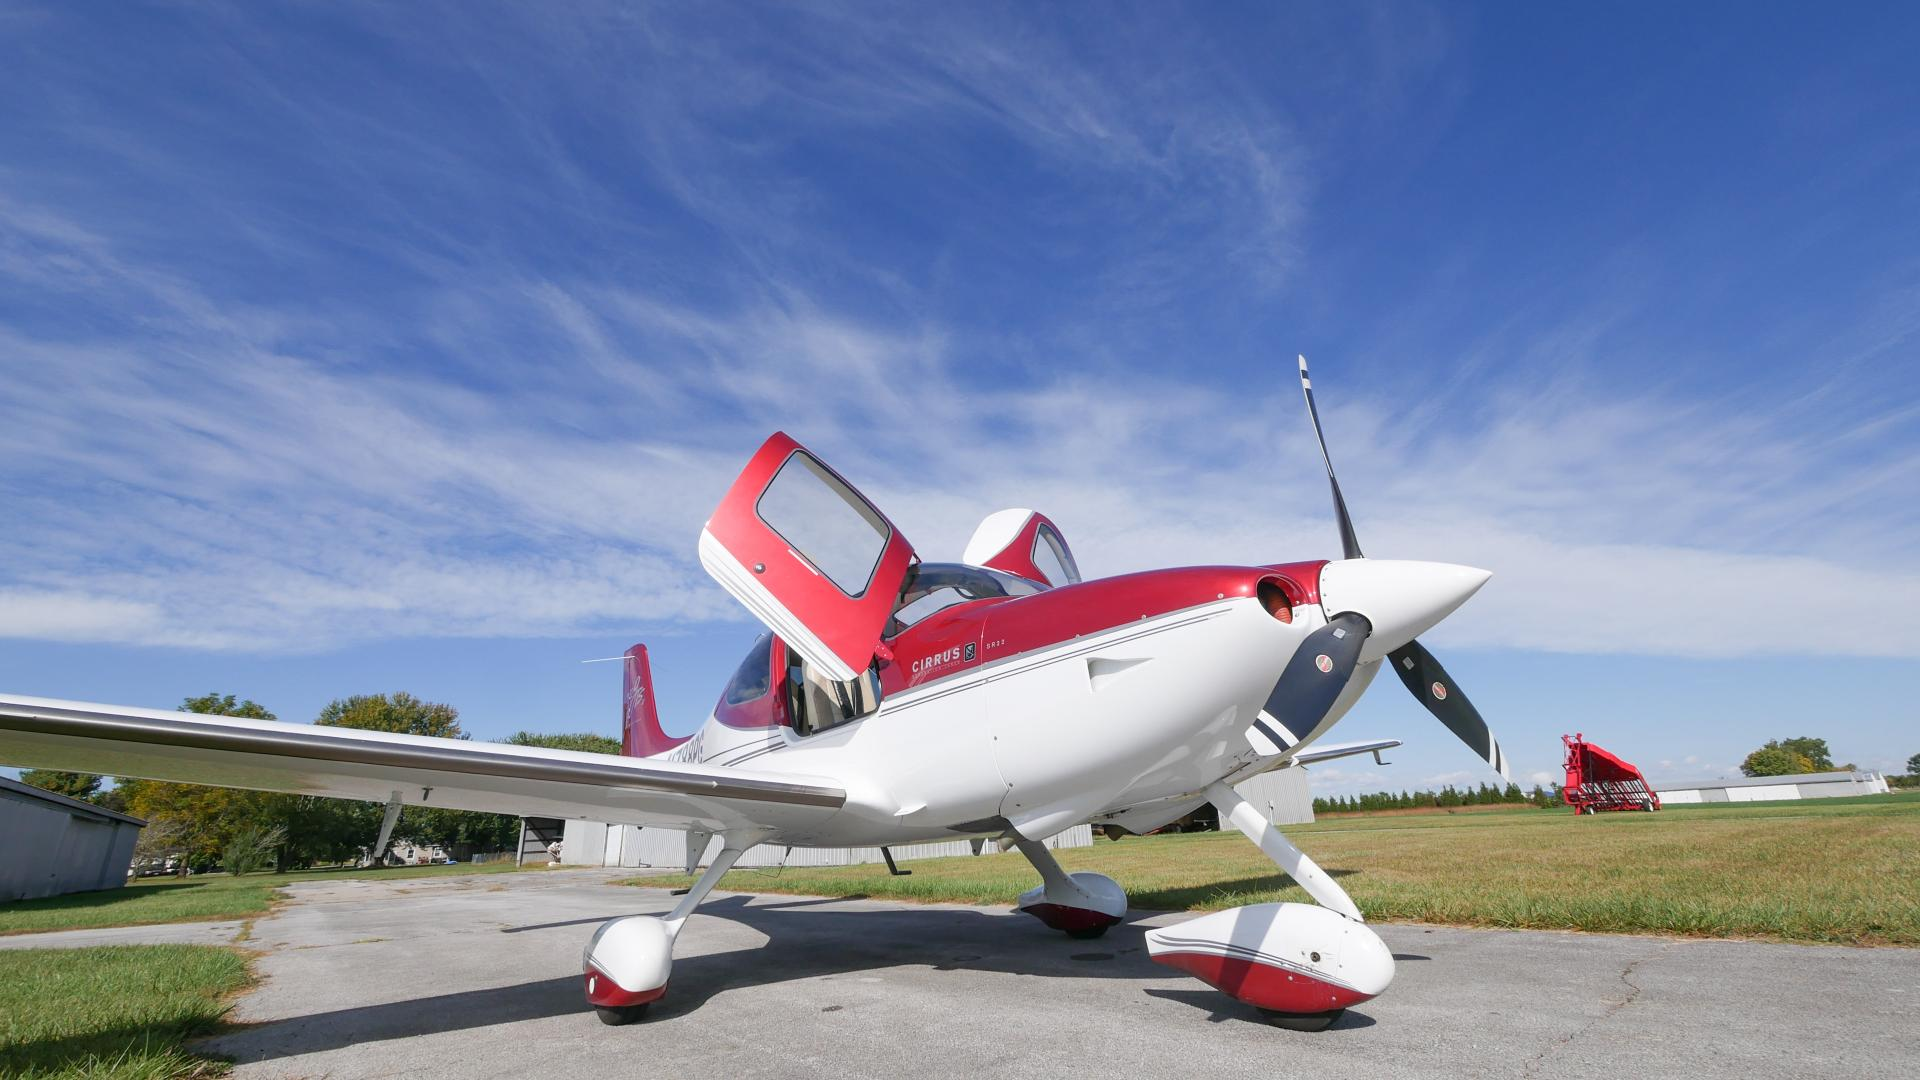 2008 Cirrus SR22 GTS G3 Perspective